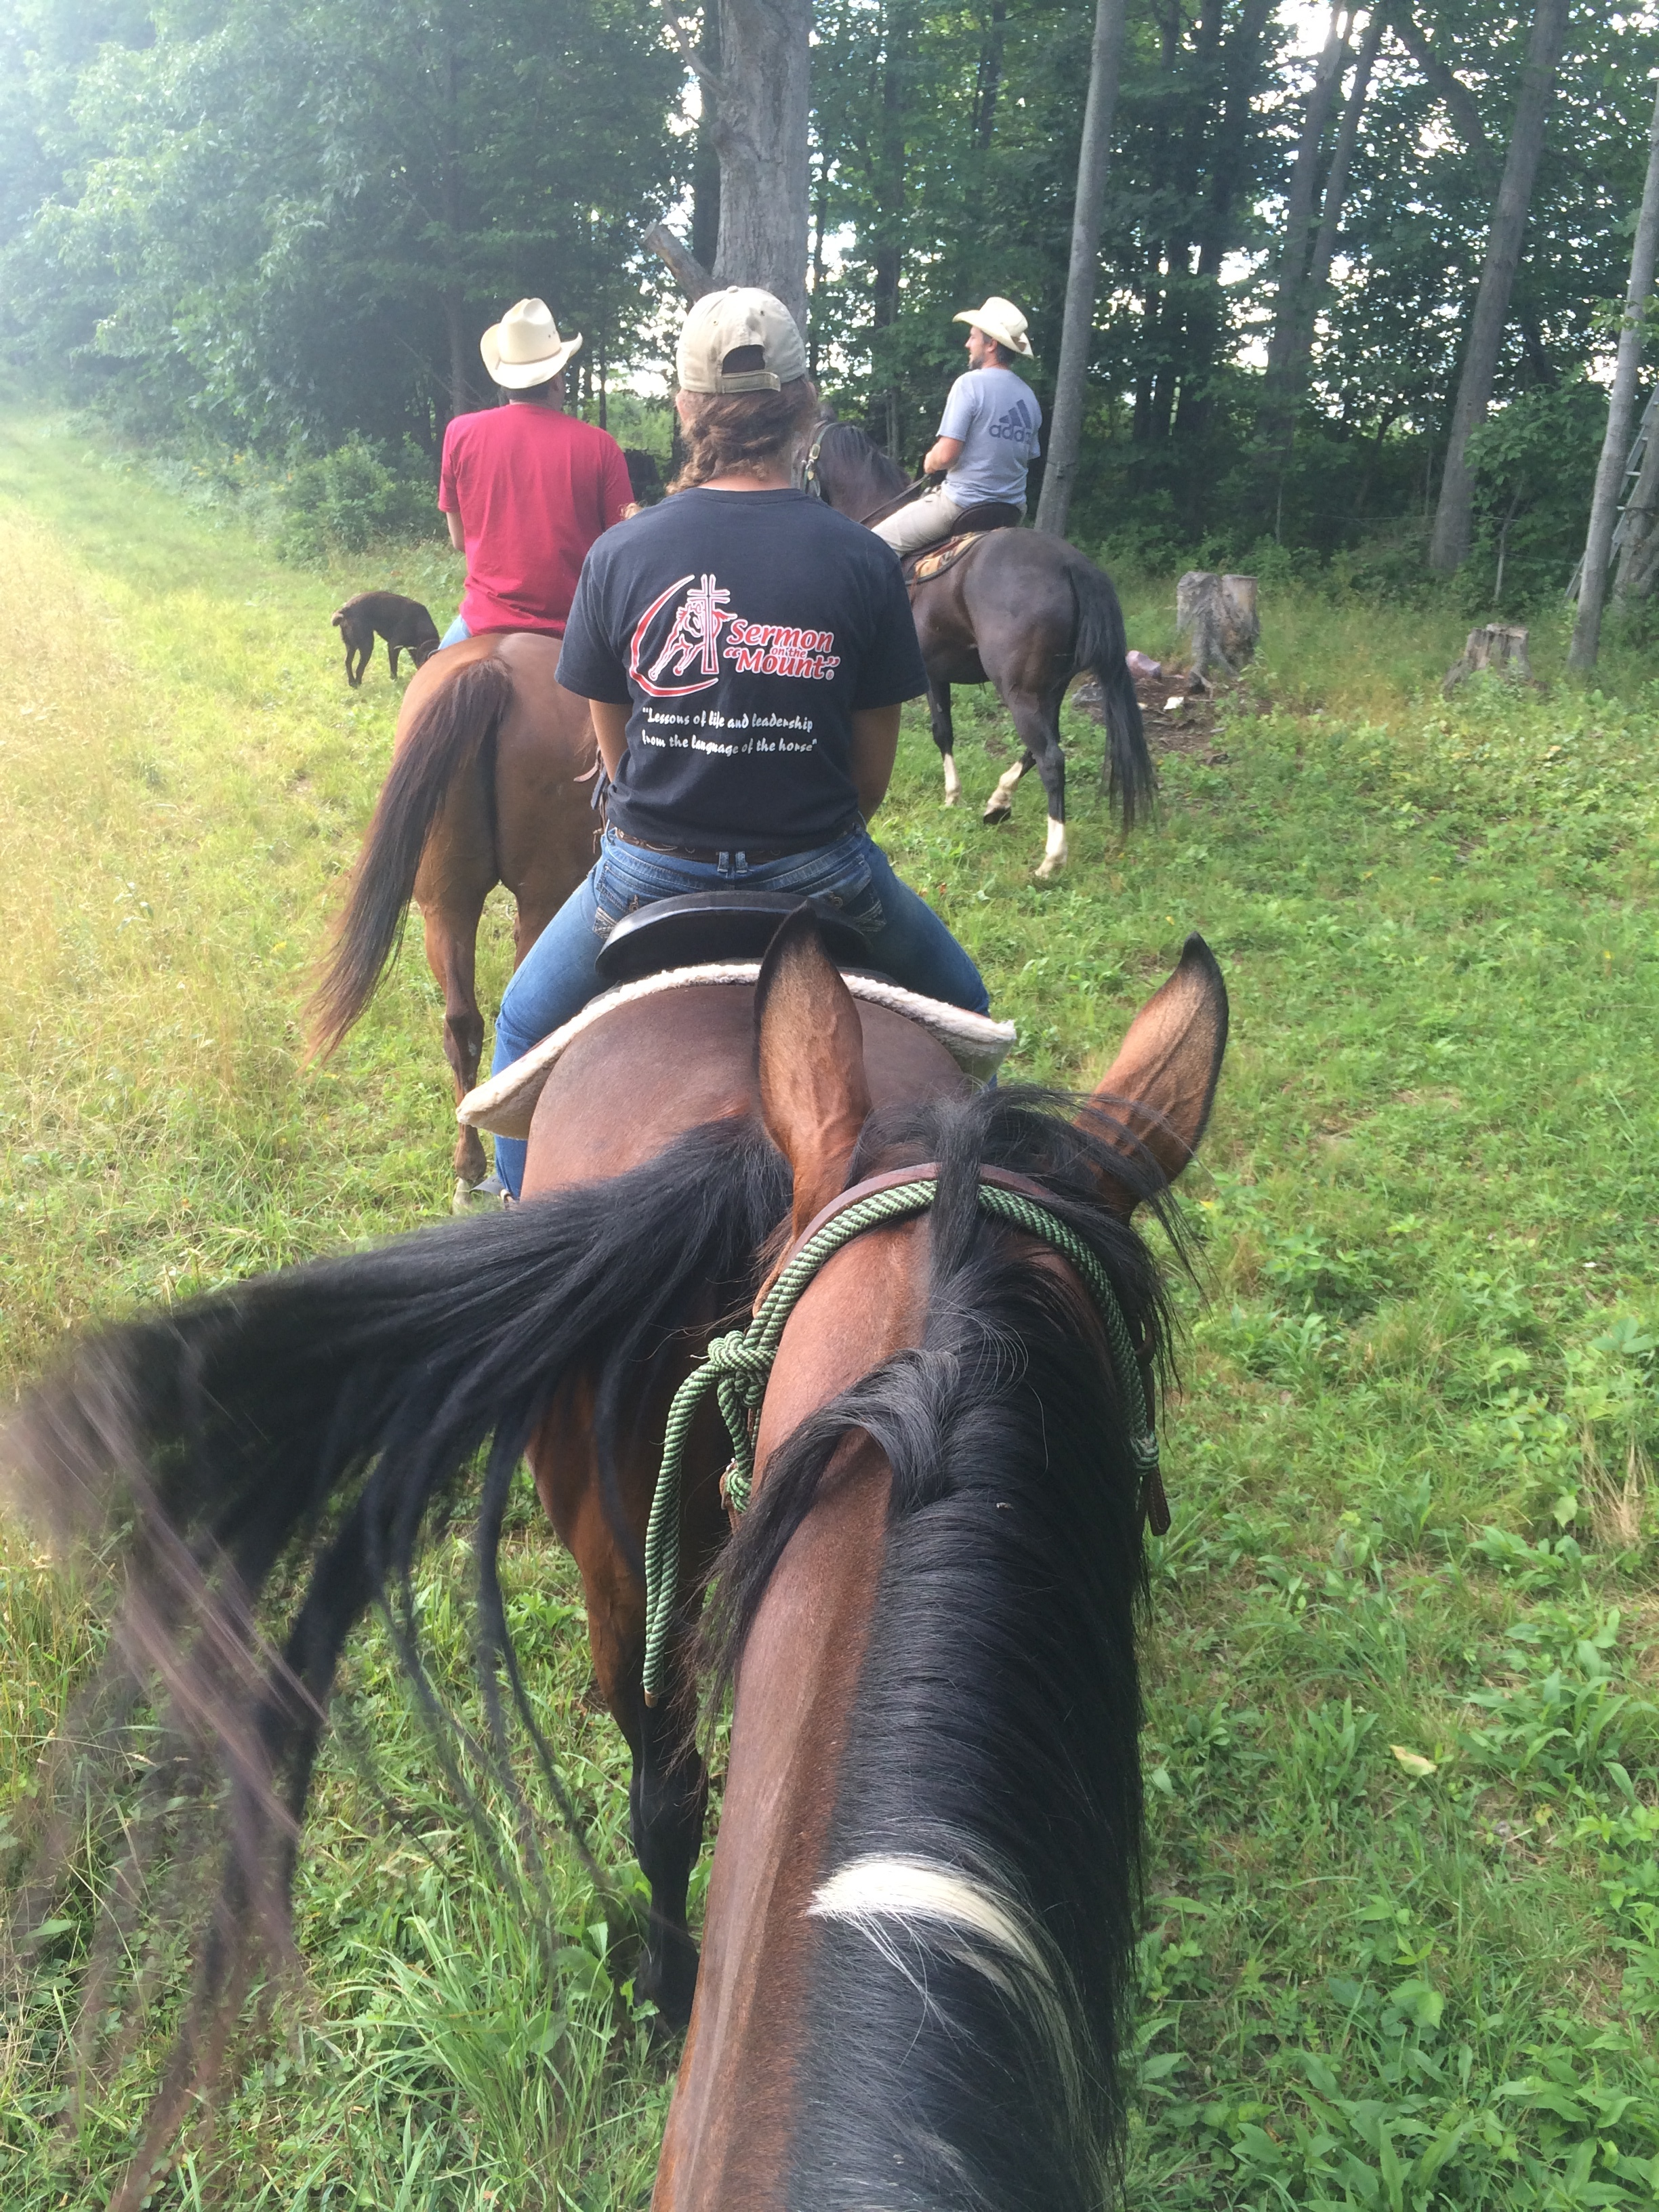 This was from my (Jennifer) trail ride that I talked about!